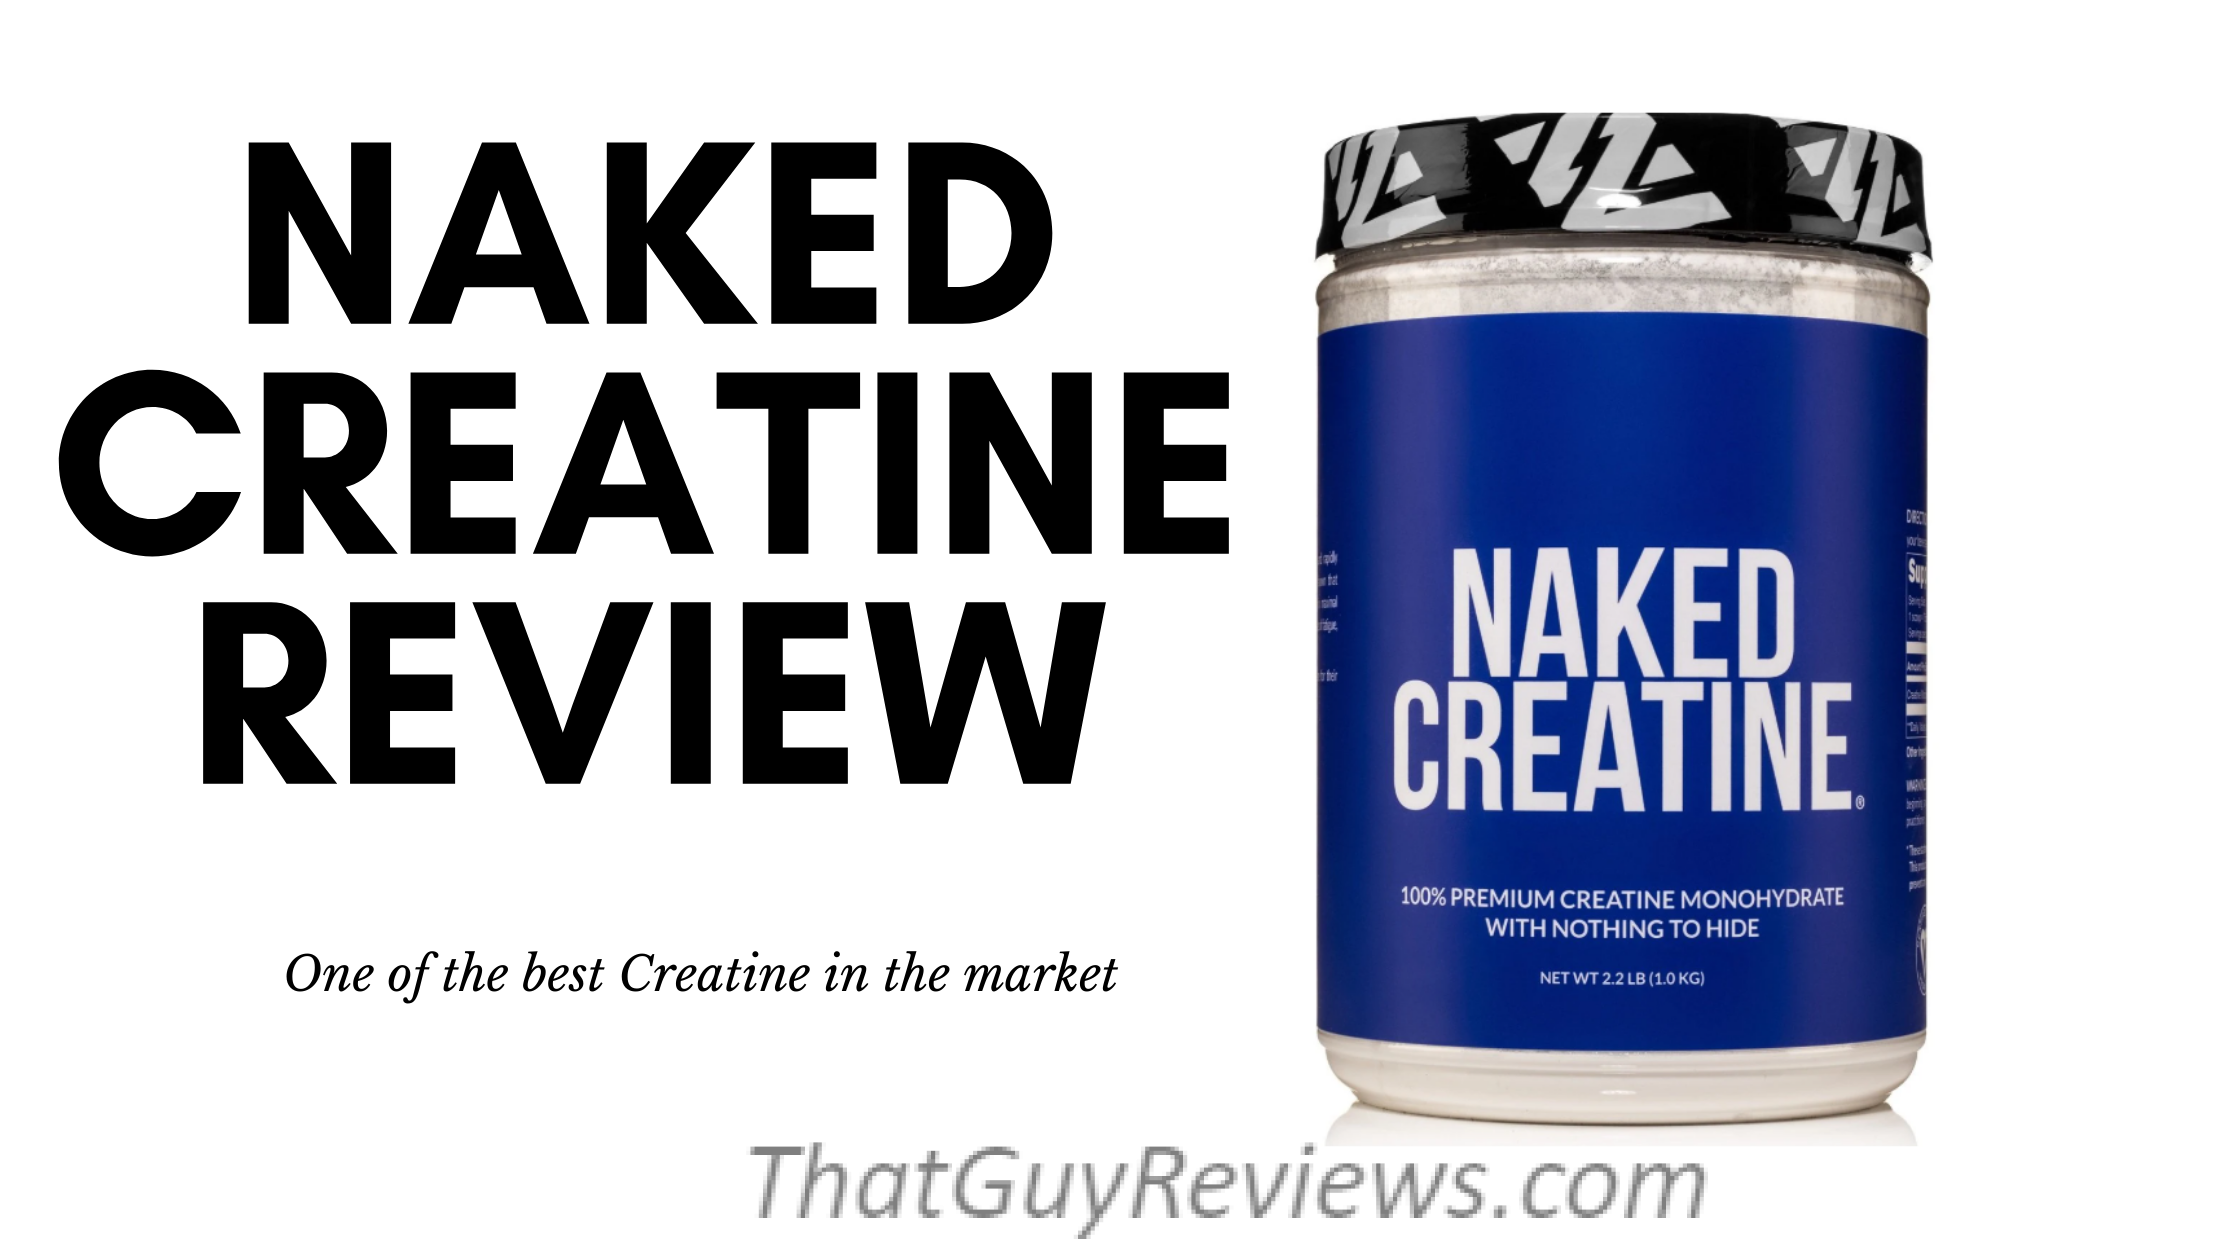 NAKED CREATINE Review